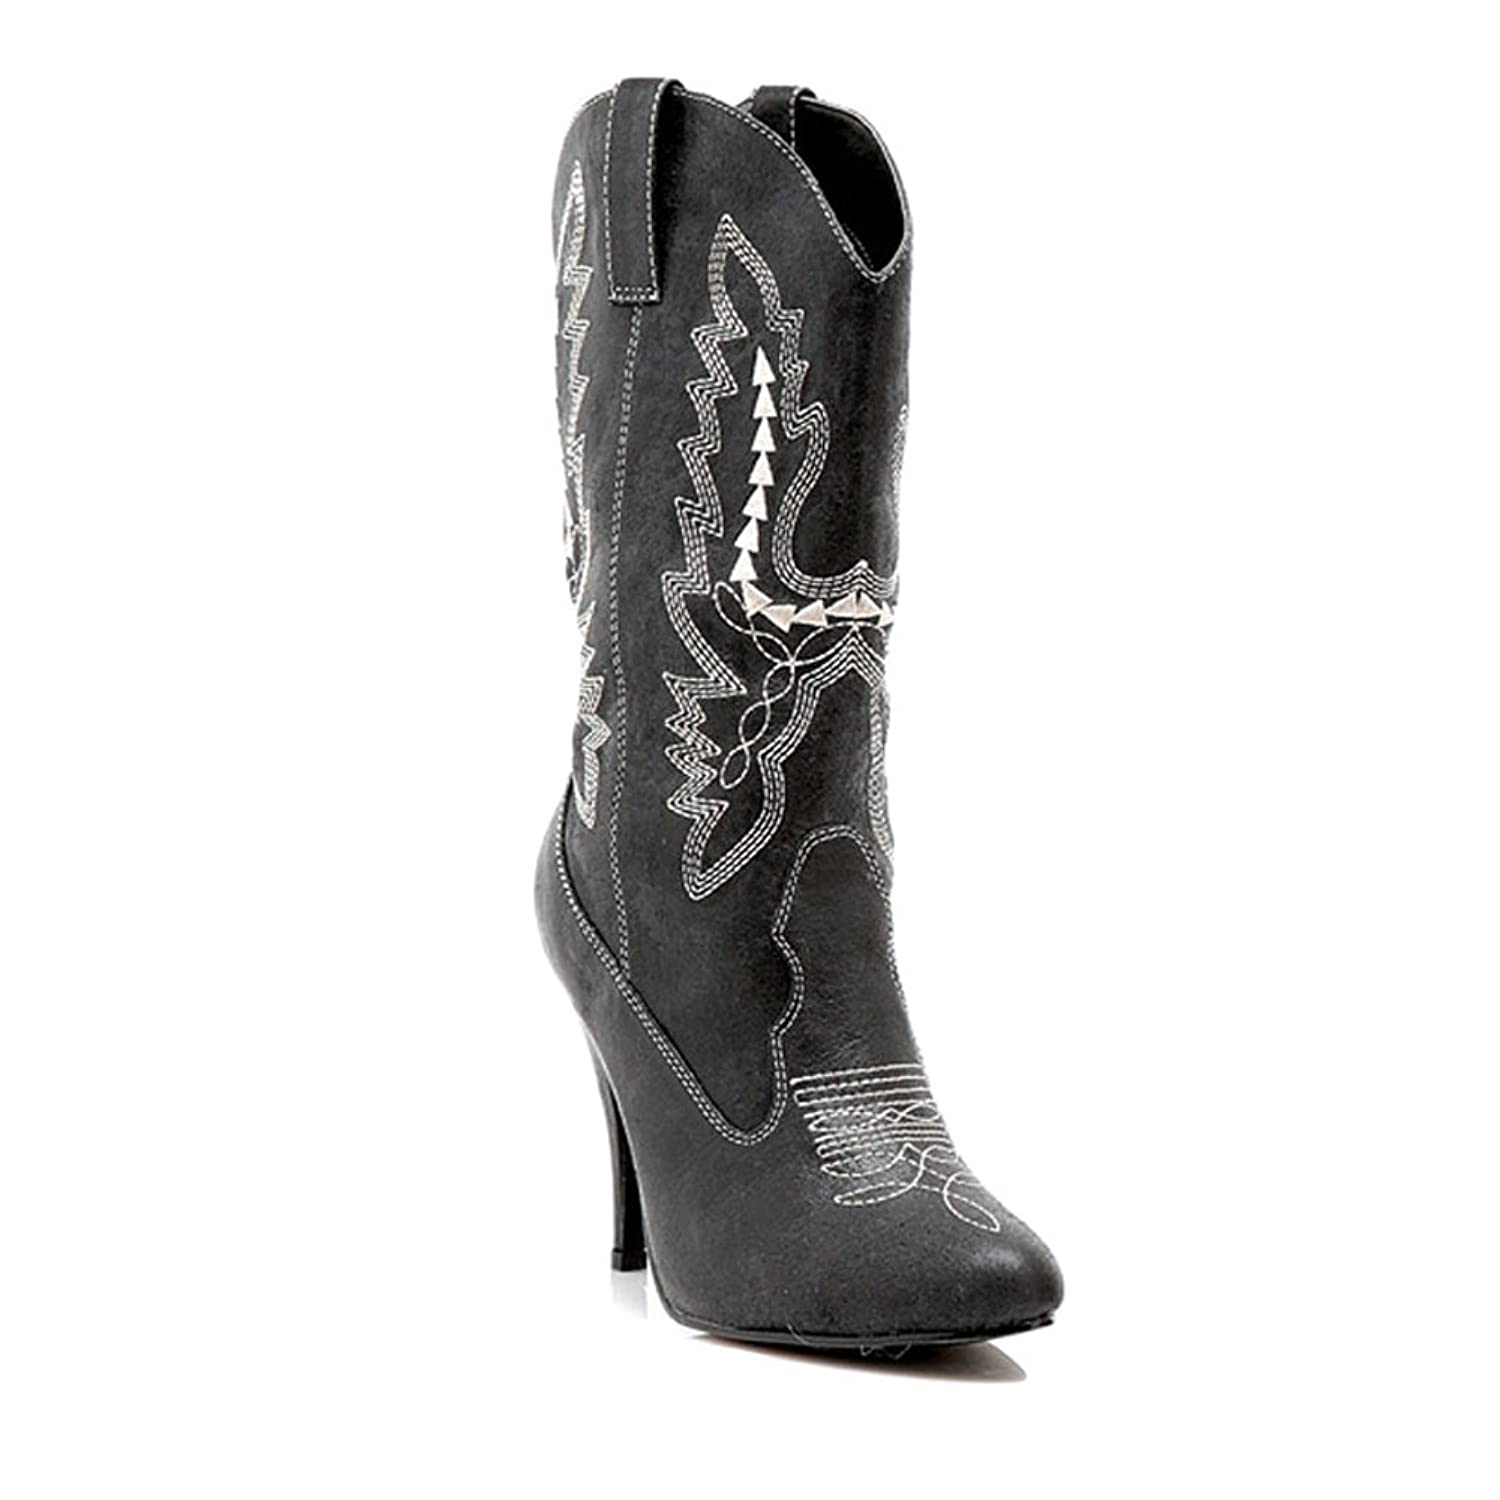 Sexy Black Embroidered Cowgirl High Heel Mid-Calf Boots - DeluxeAdultCostumes.com